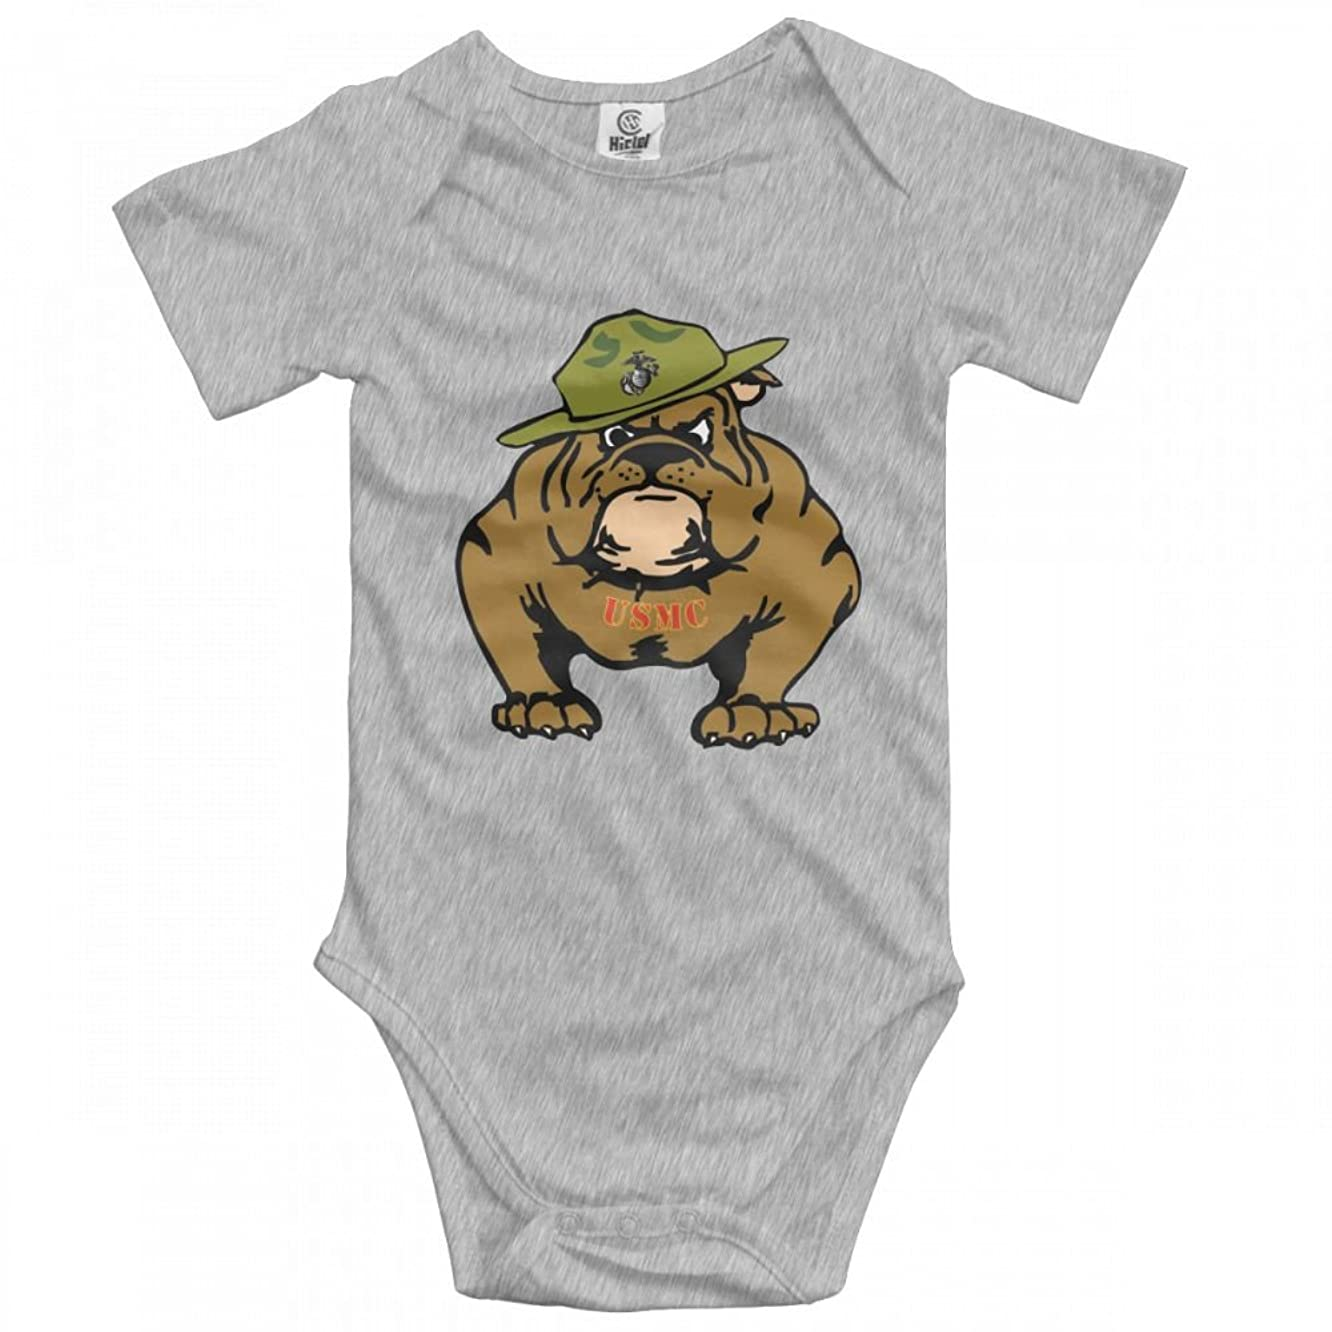 YERZ USMC Bulldogs in Army Navy Infant Baby Girl Boy Romper Jumpsuit Outfits Clothes Sleepwear